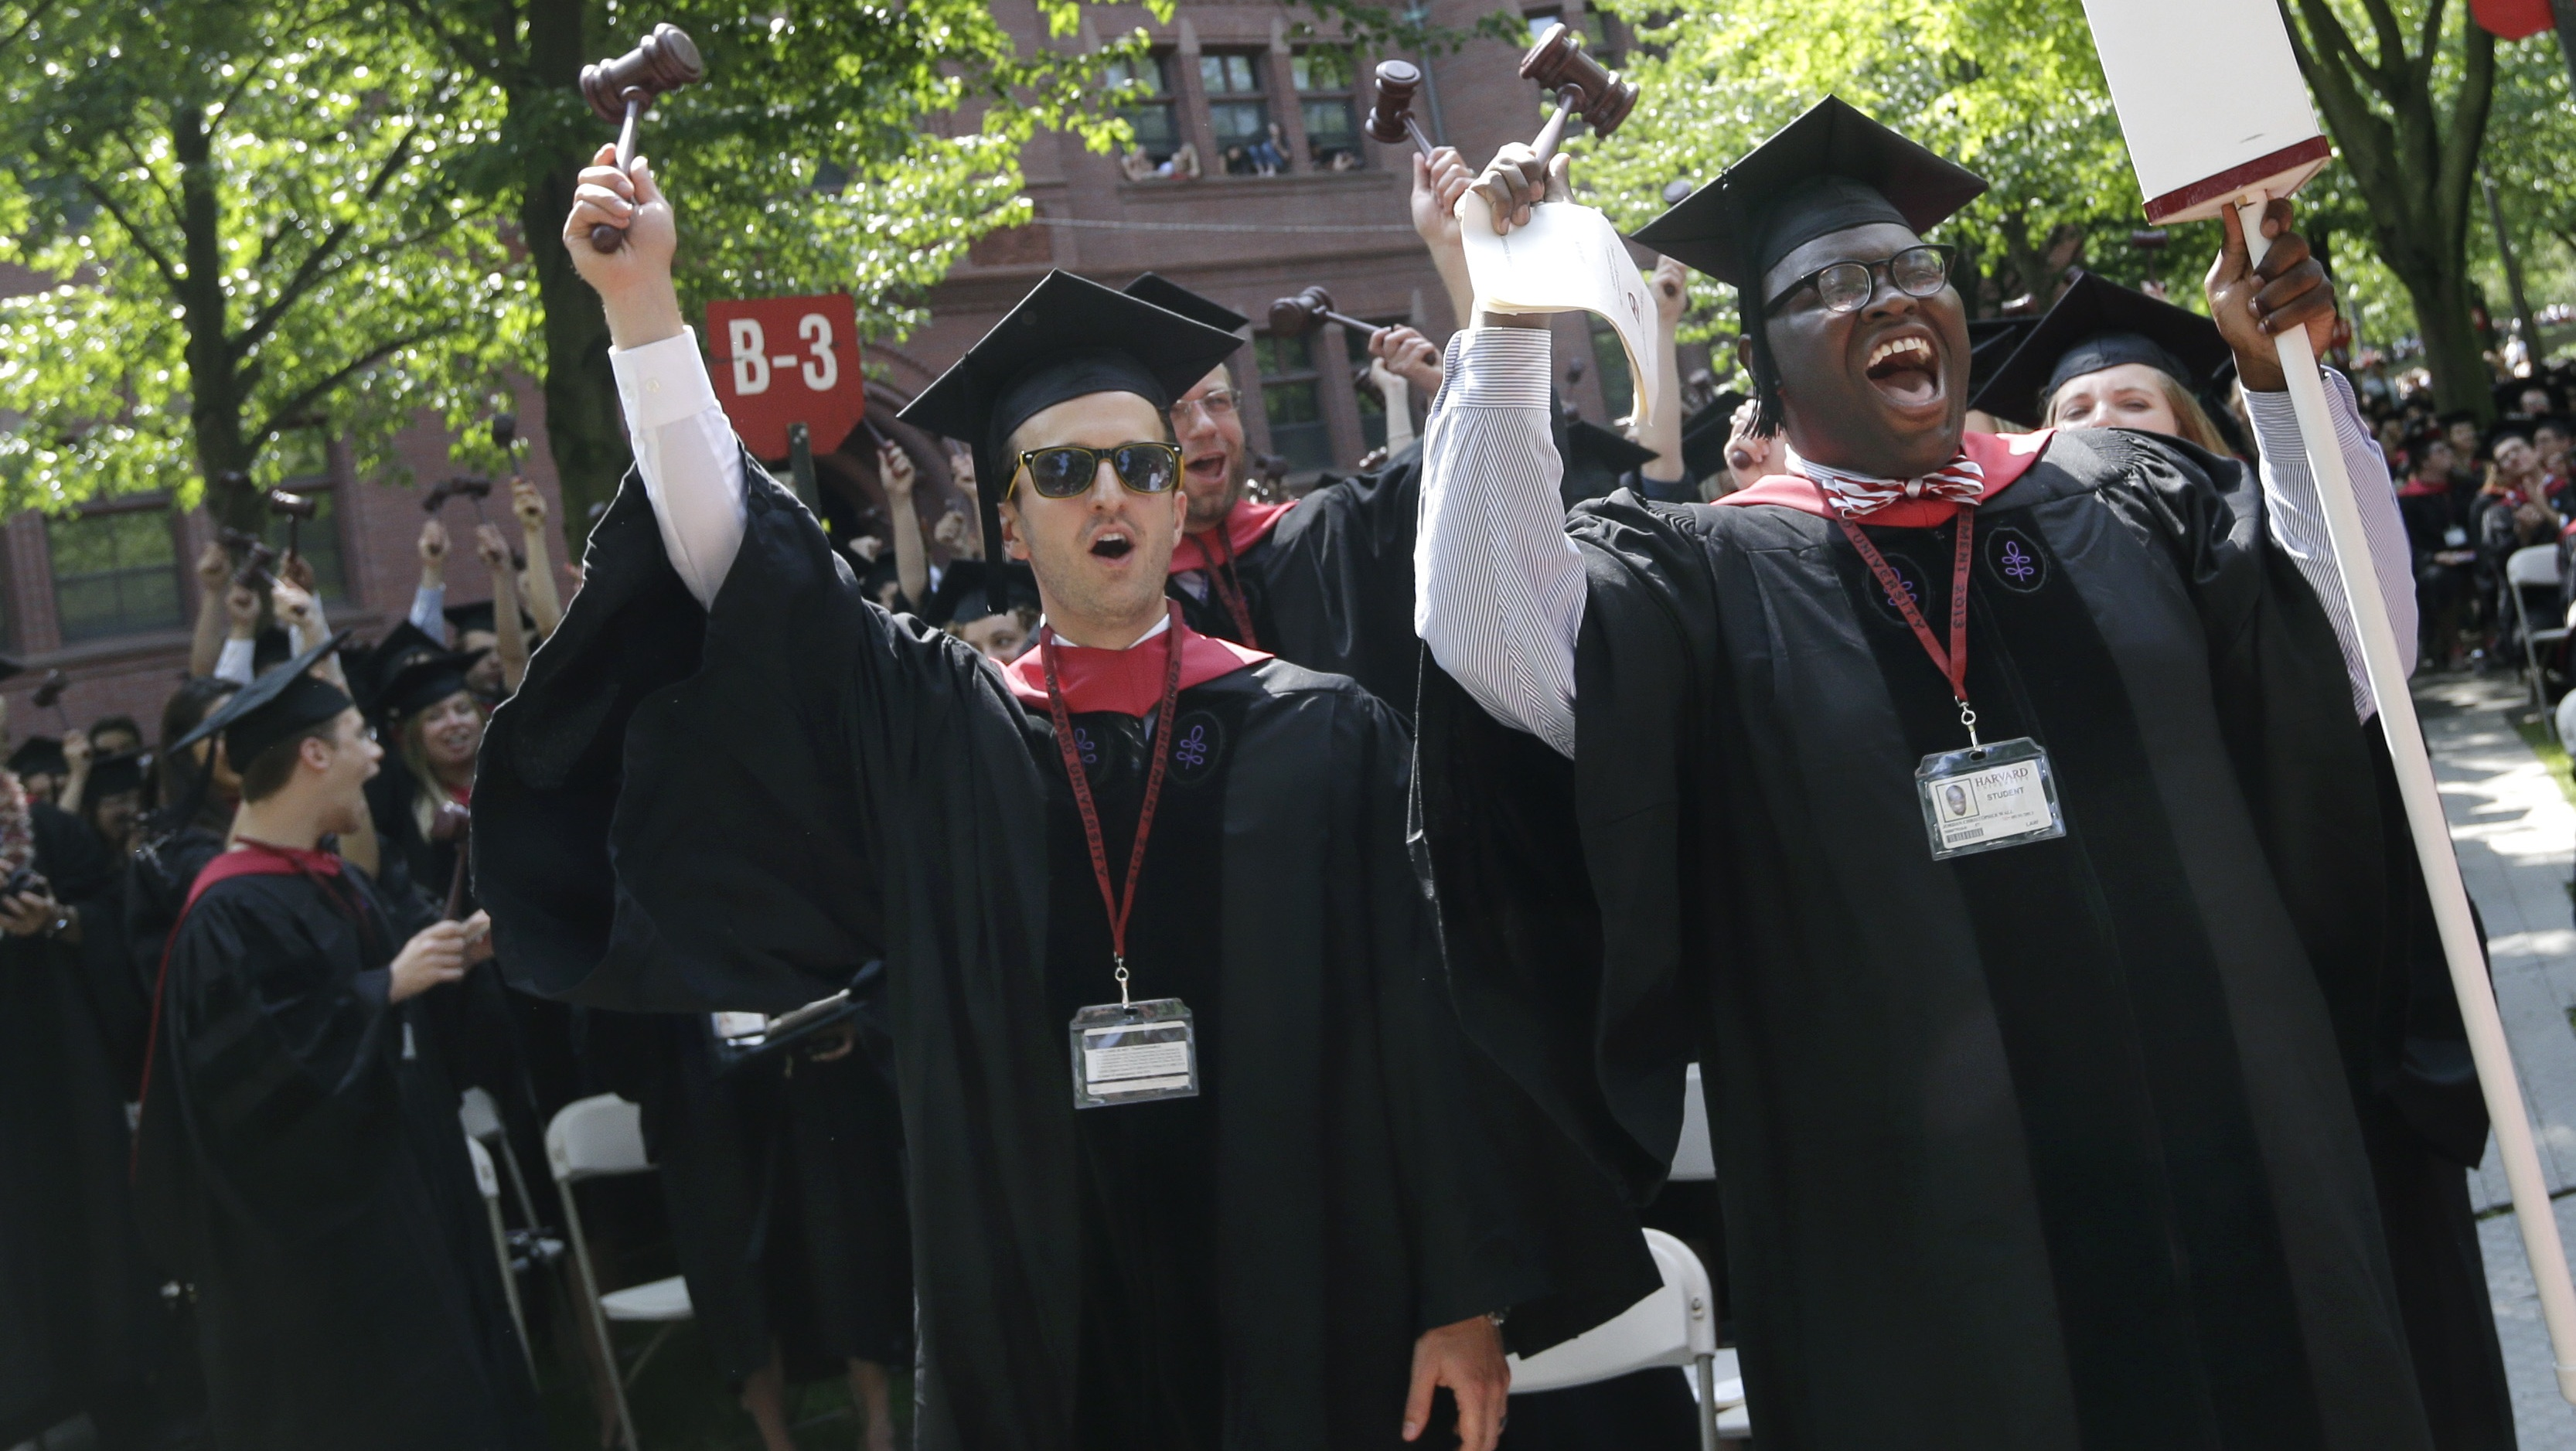 Adam Derry, left, and Jordan Christopher Wall, right, lead the cheers from students graduating from Harvard University's School of Law during commencement ceremonies in Cambridge, Mass., Thursday, May 30, 2013. (AP Photo/Elise Amendola)